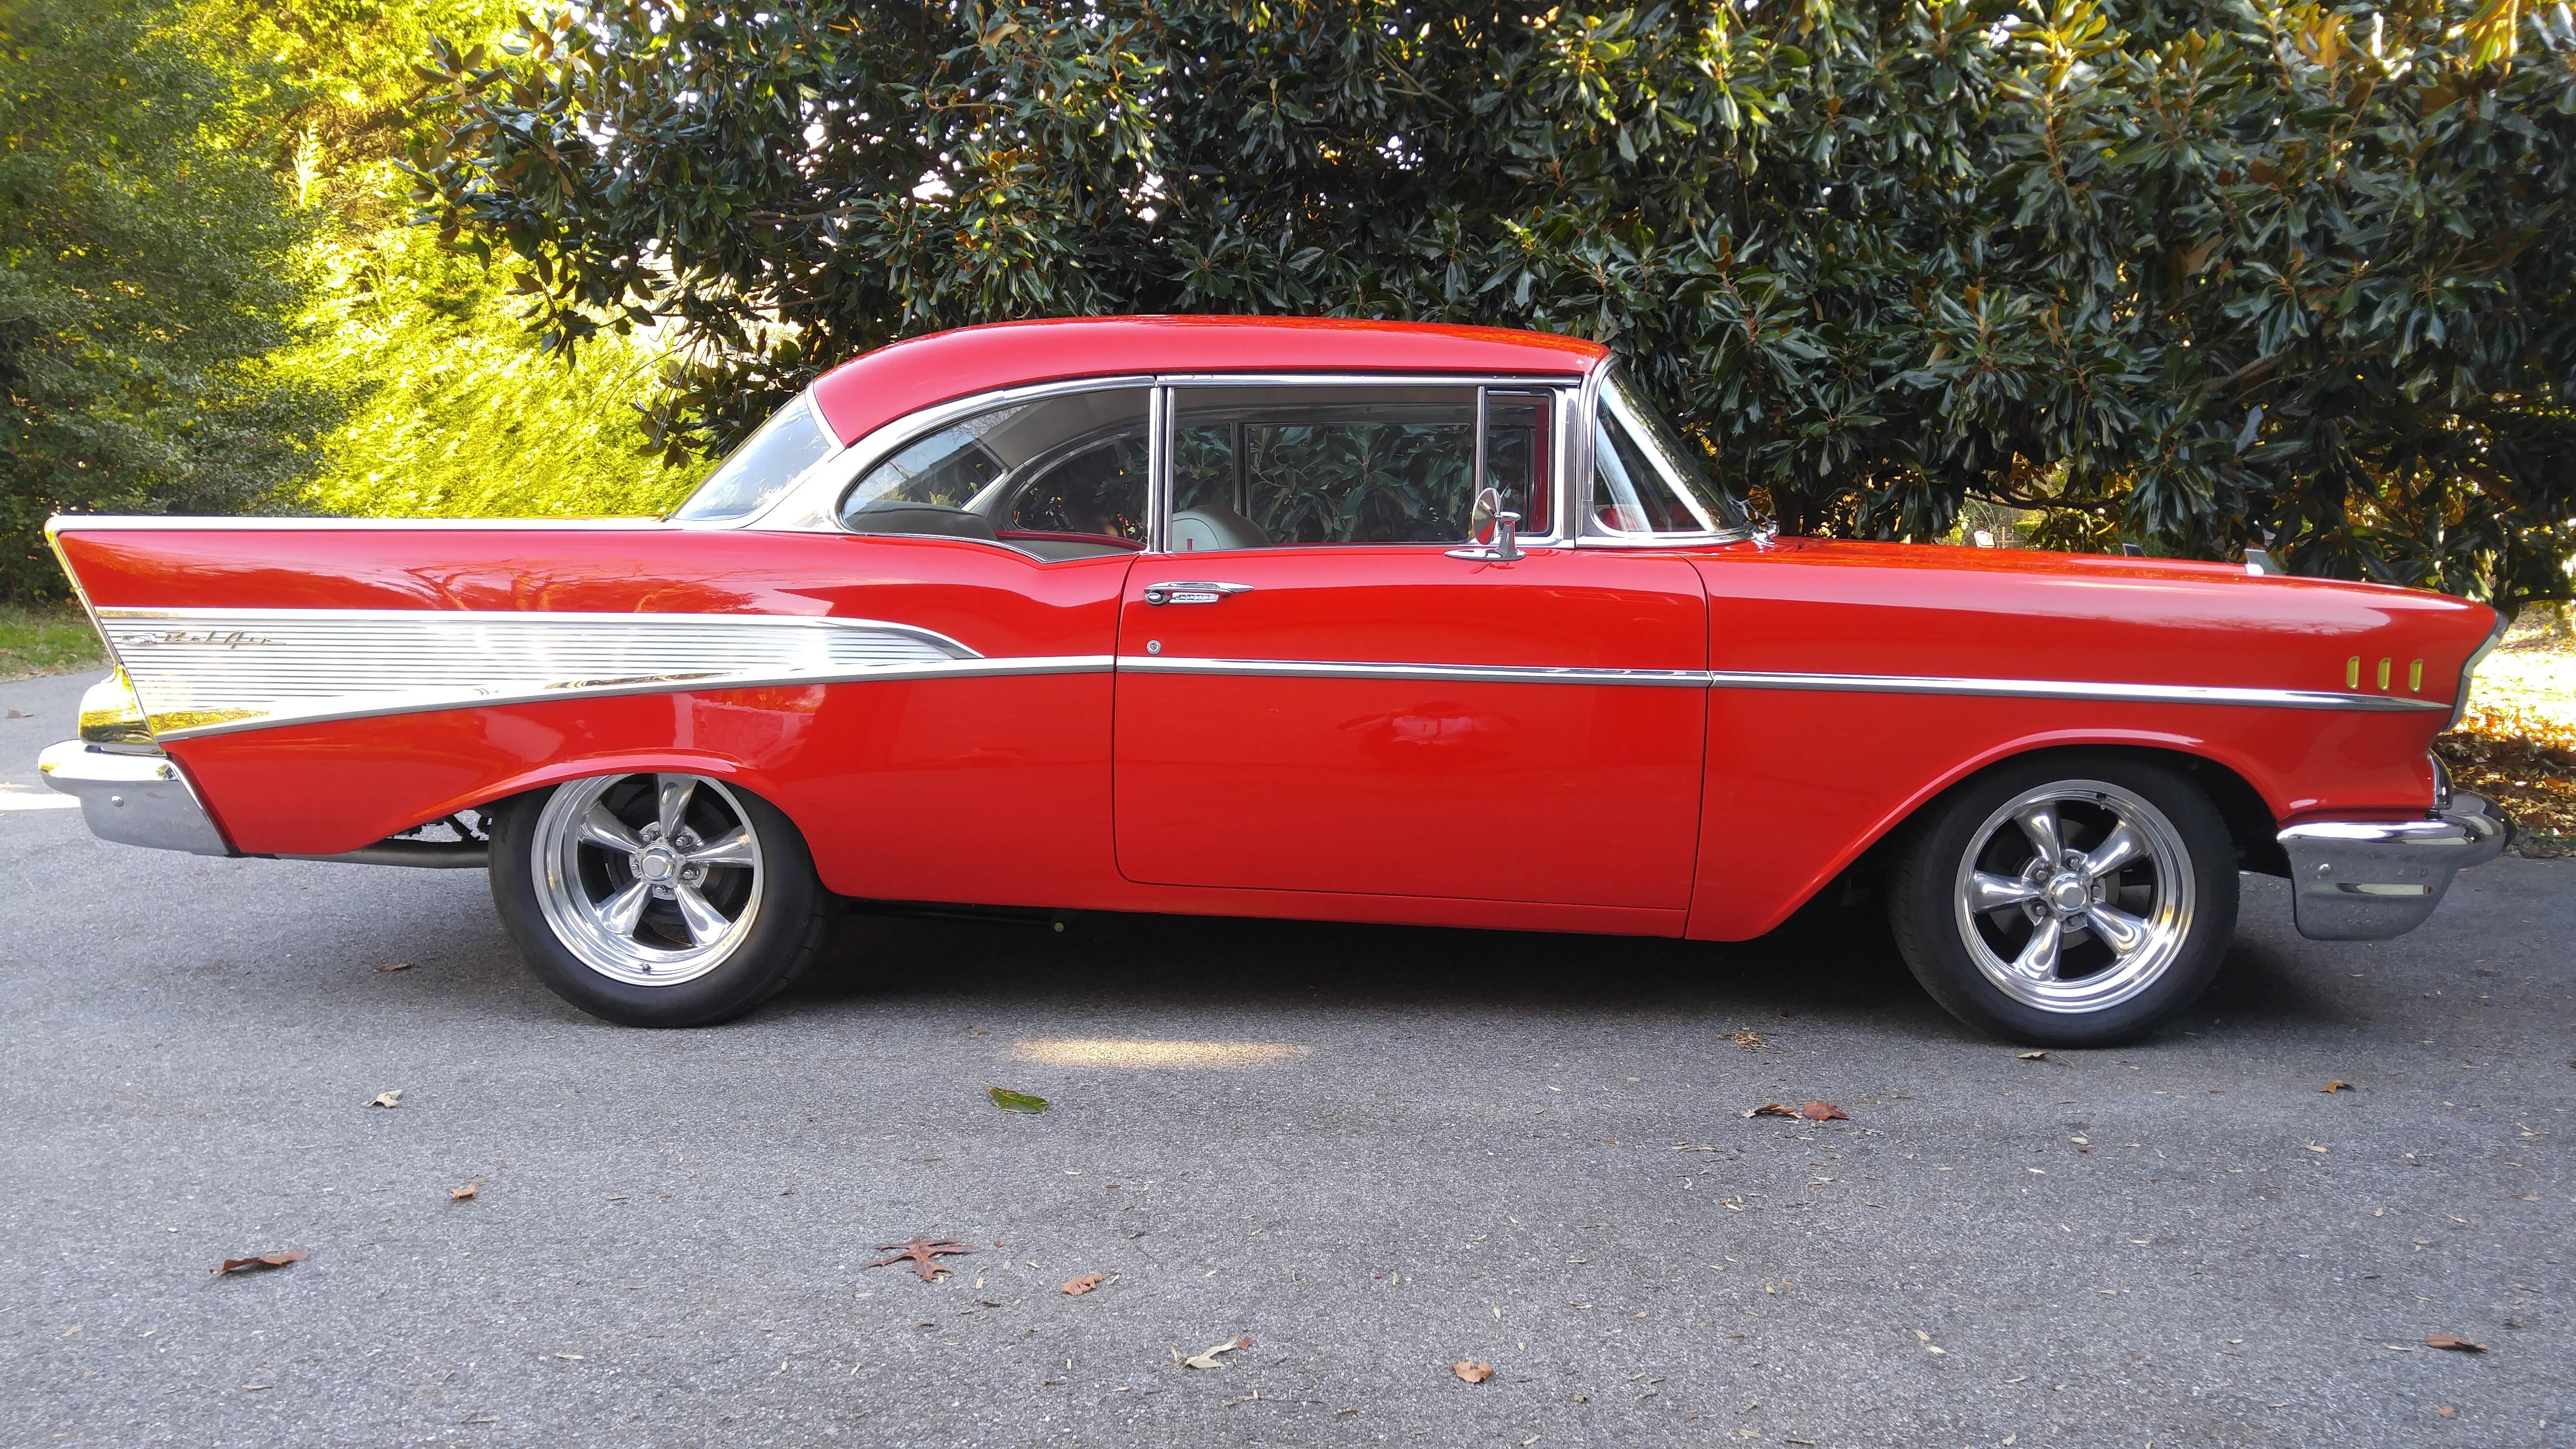 Red 57 Chevy Bel Air,Chevy.Wiring Diagram Database